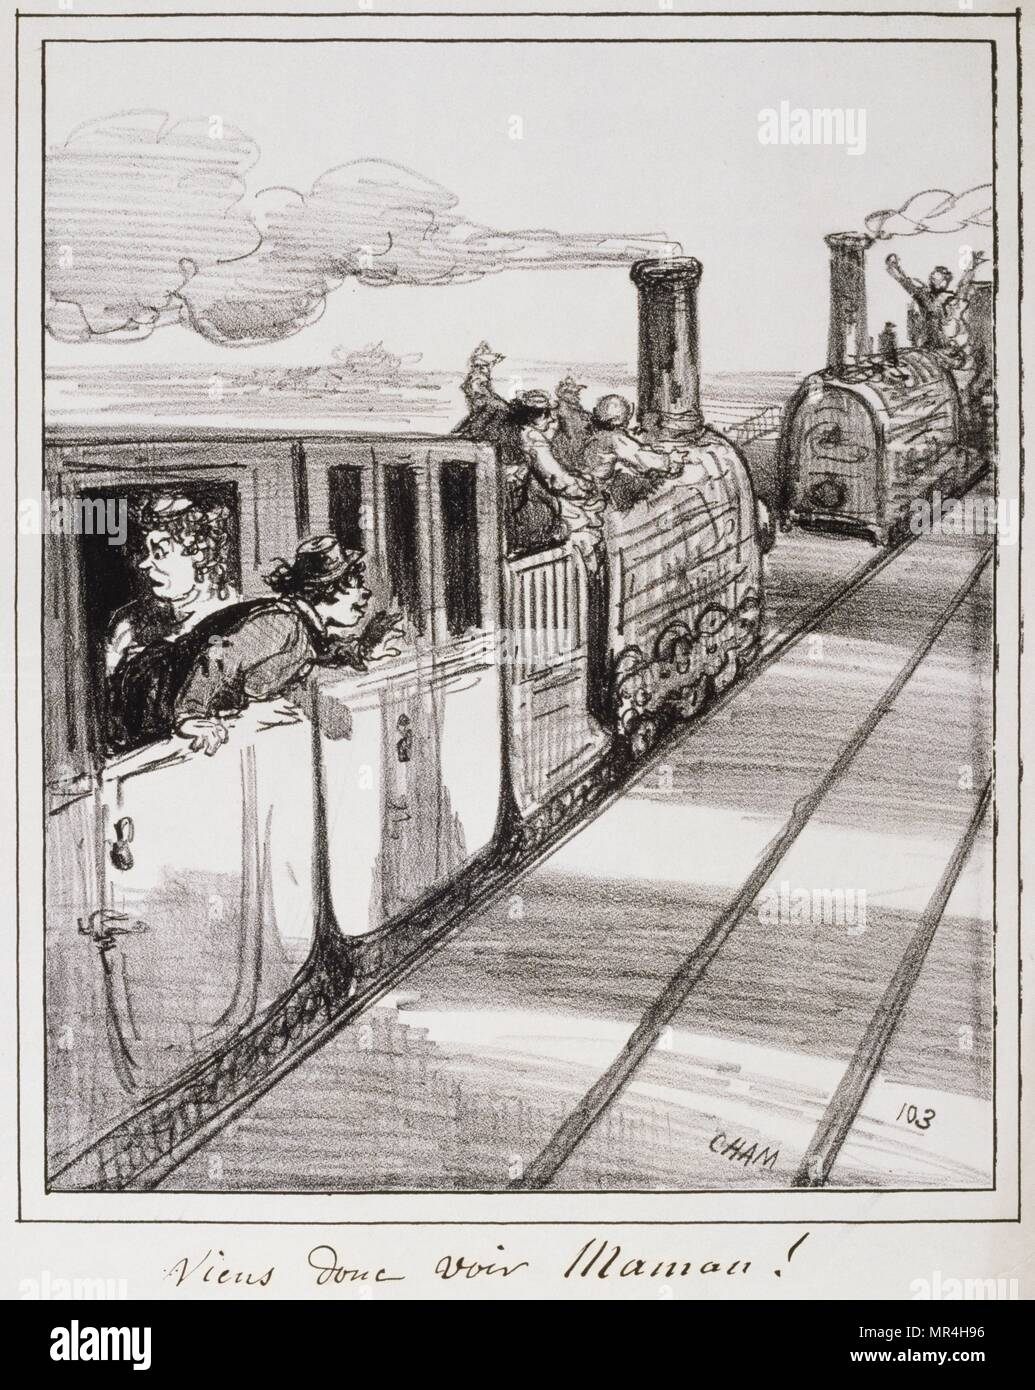 mid-19th century French illustration showing two trains departing in opposite directions as passengers wave farewell. 1850 - Stock Image